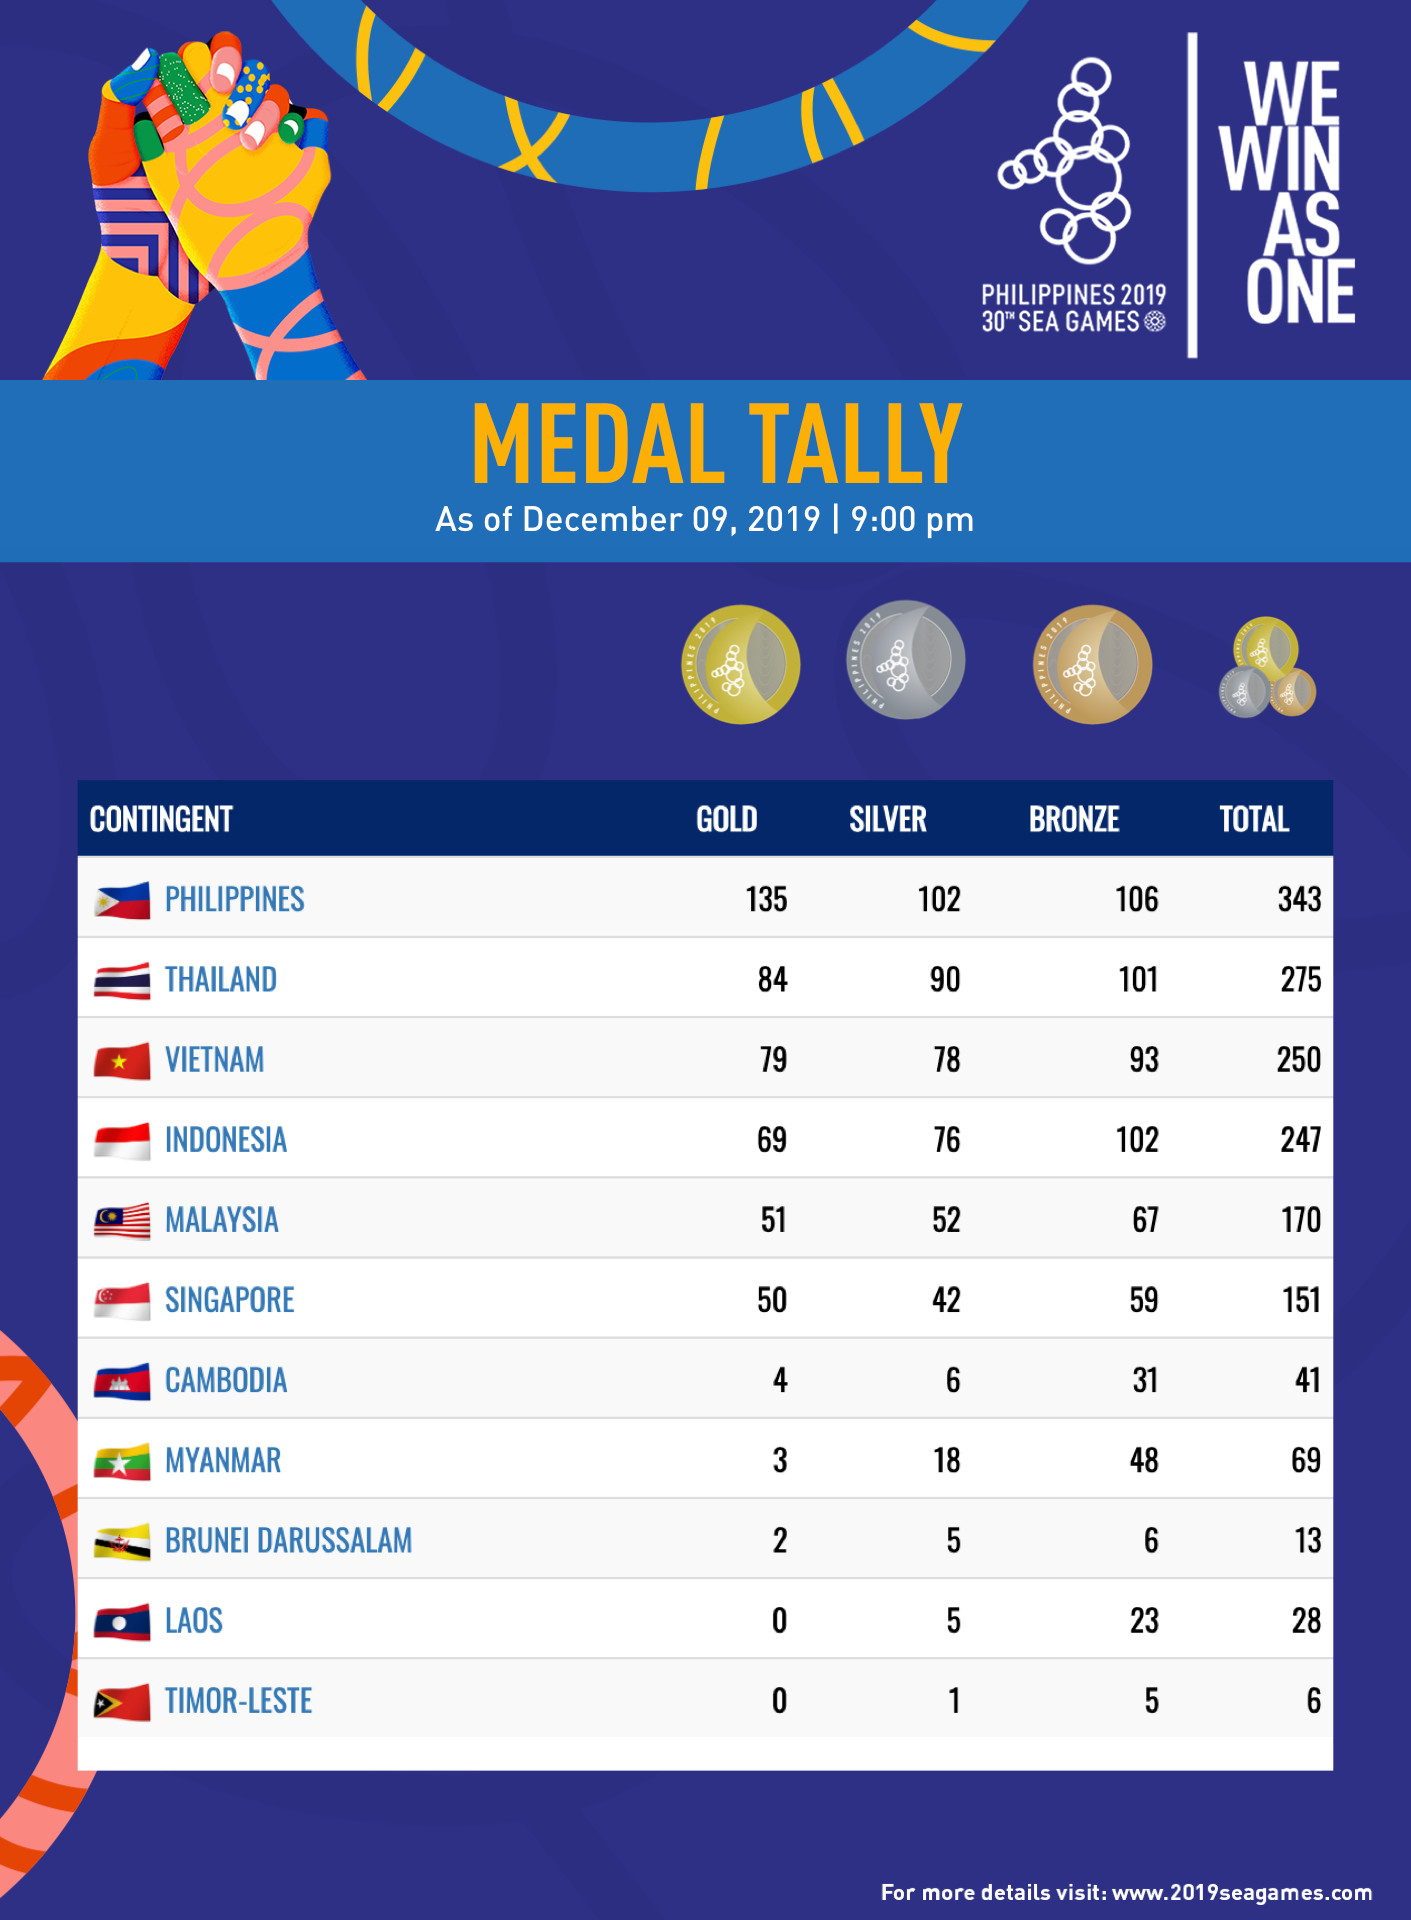 Philippines as Overall Champion on SEA Games